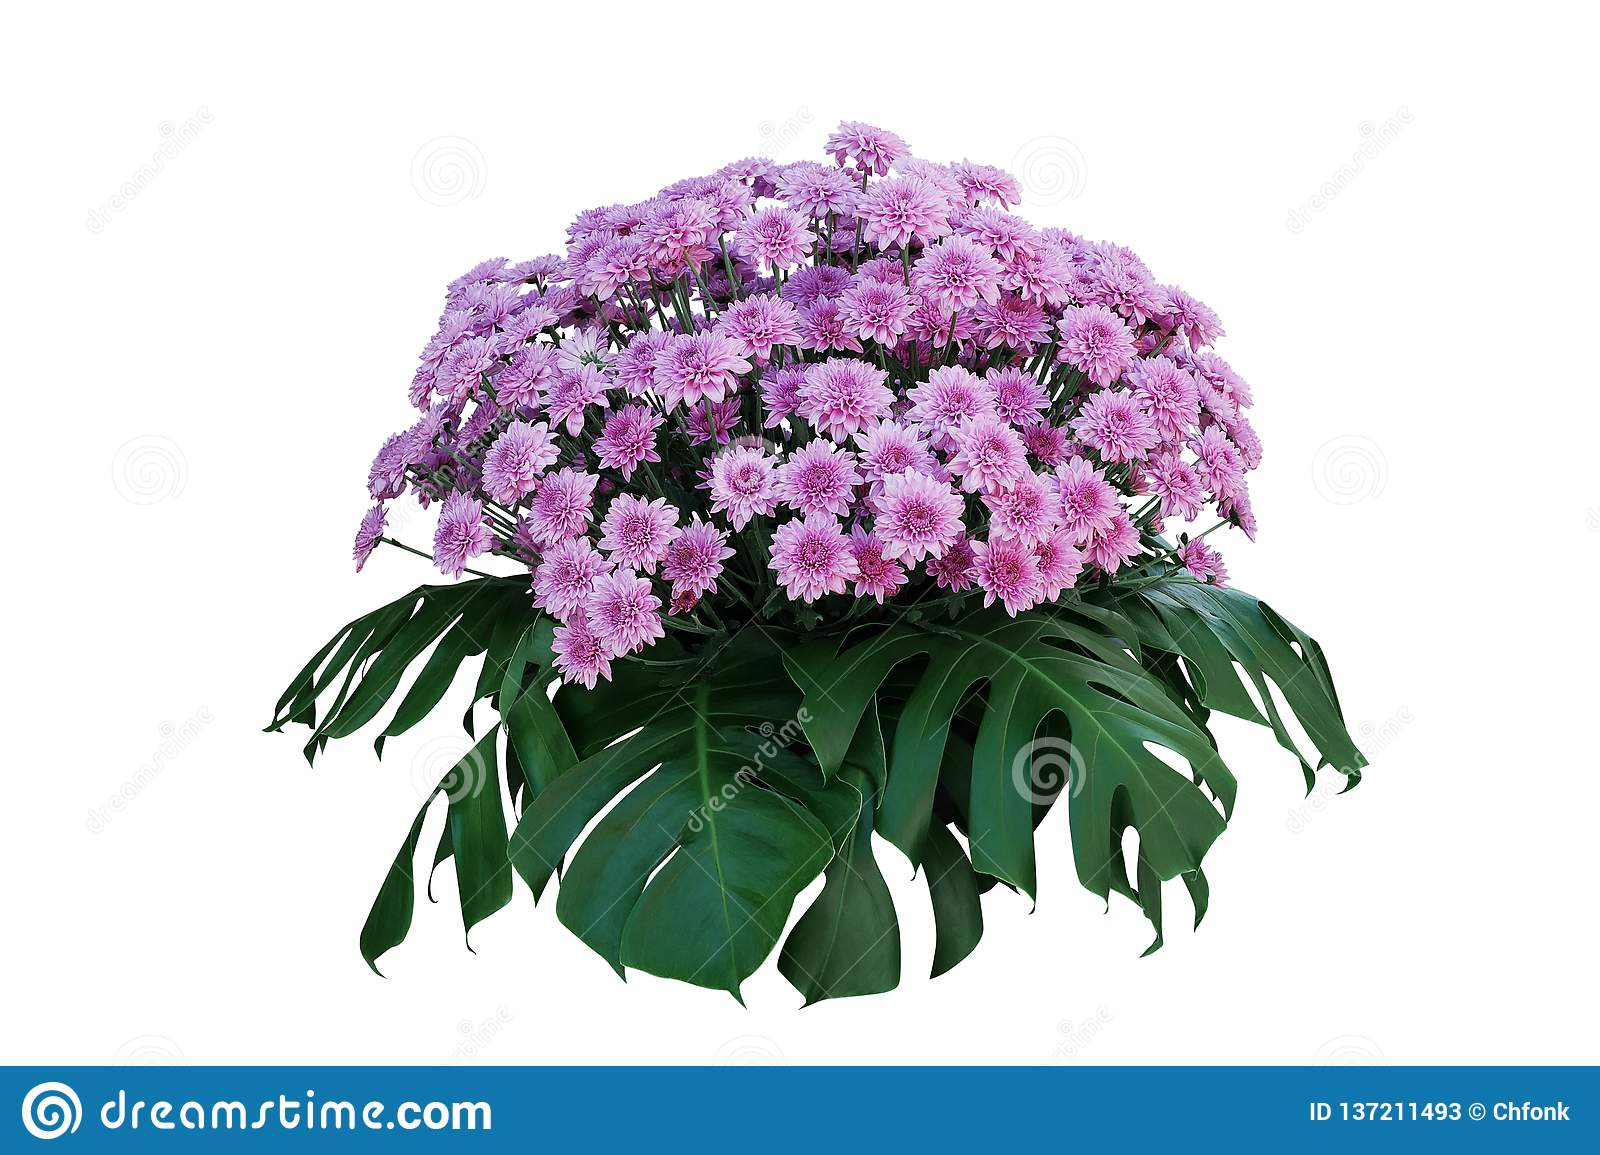 Purple Chrysanthemum flowers with tropical leaves Monstera, ornamental nature bush podium floral arrangement isolated on white